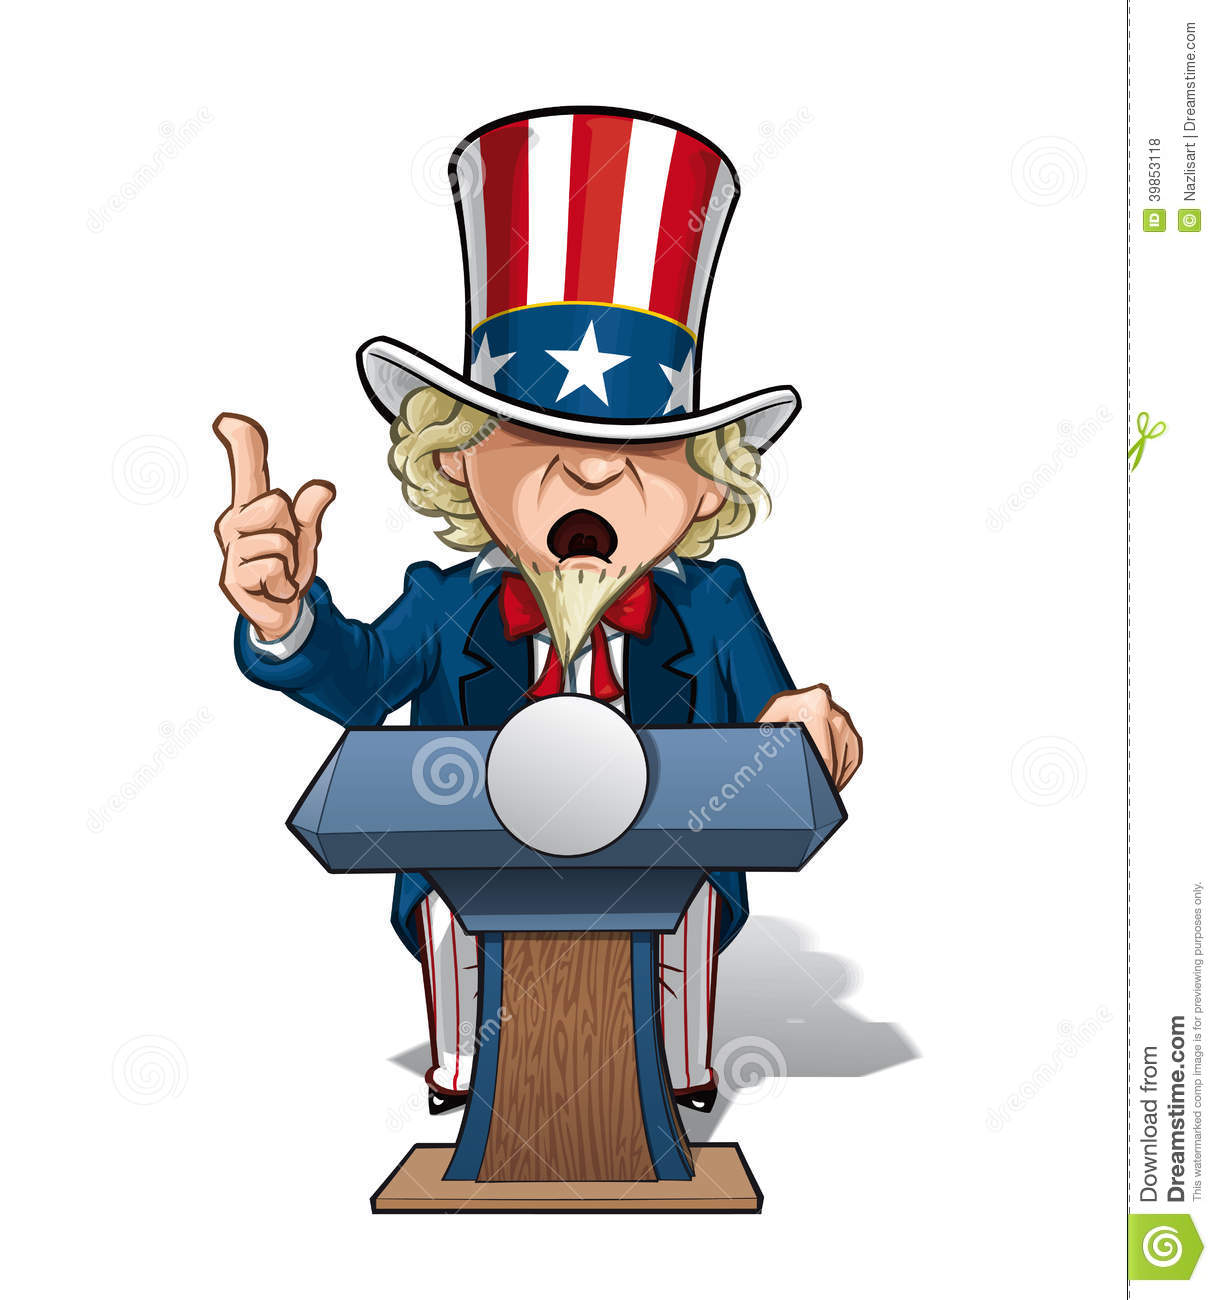 ... of Uncle Sam on the podium, giving a speech with intence expression